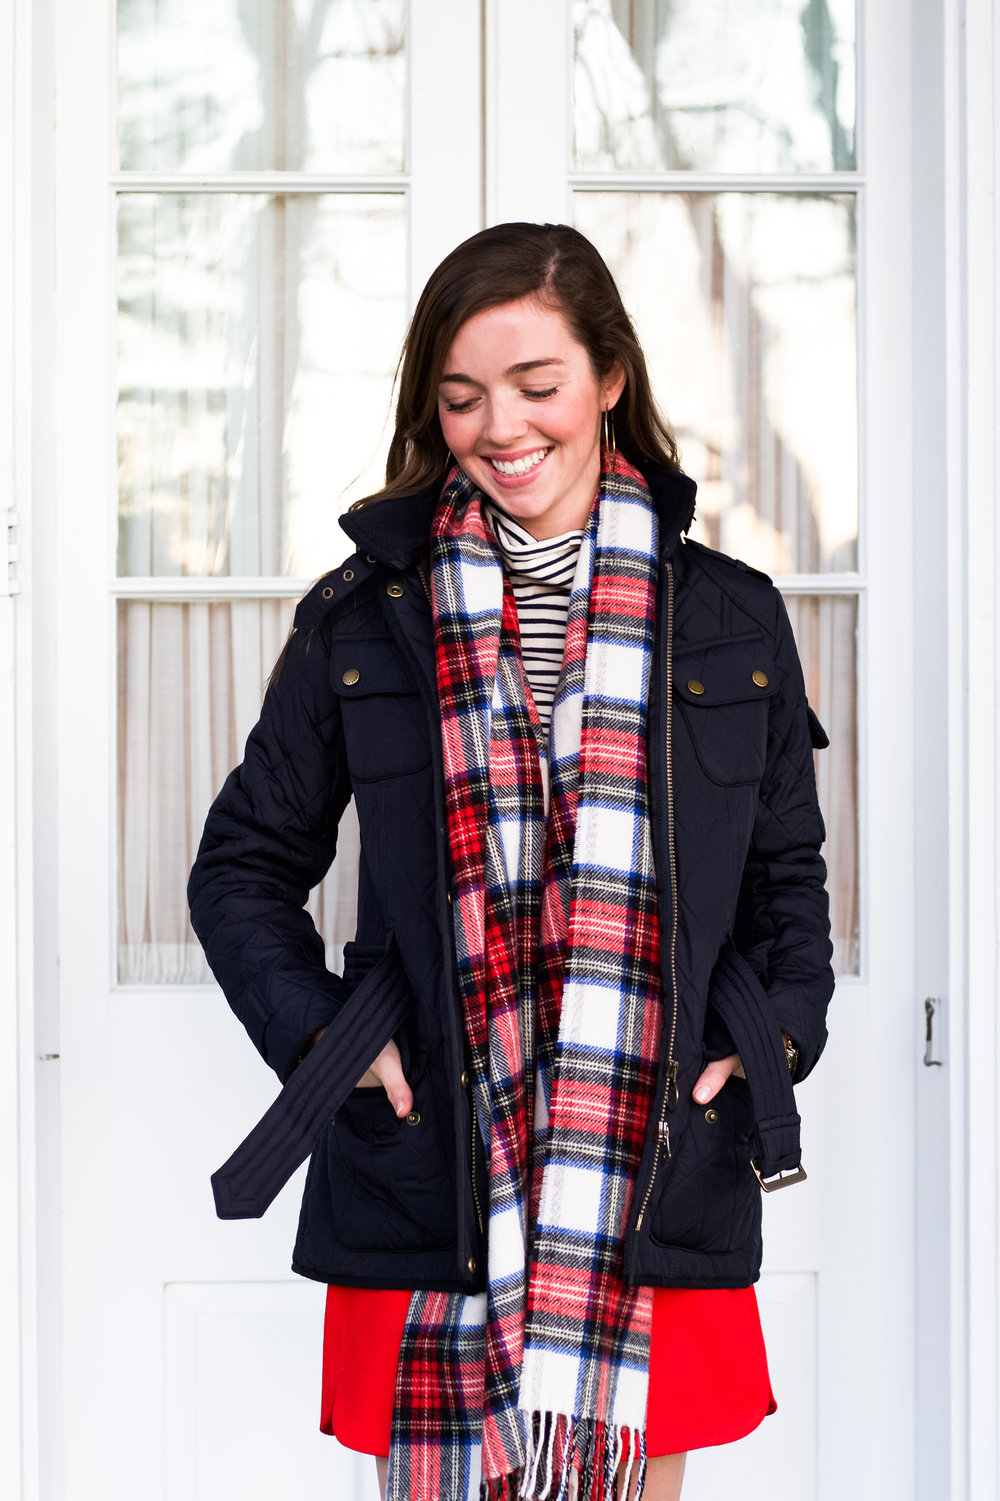 fashion blogger lcb style greenbrier resort christmas barbour international jacket (20 of 32).jpg